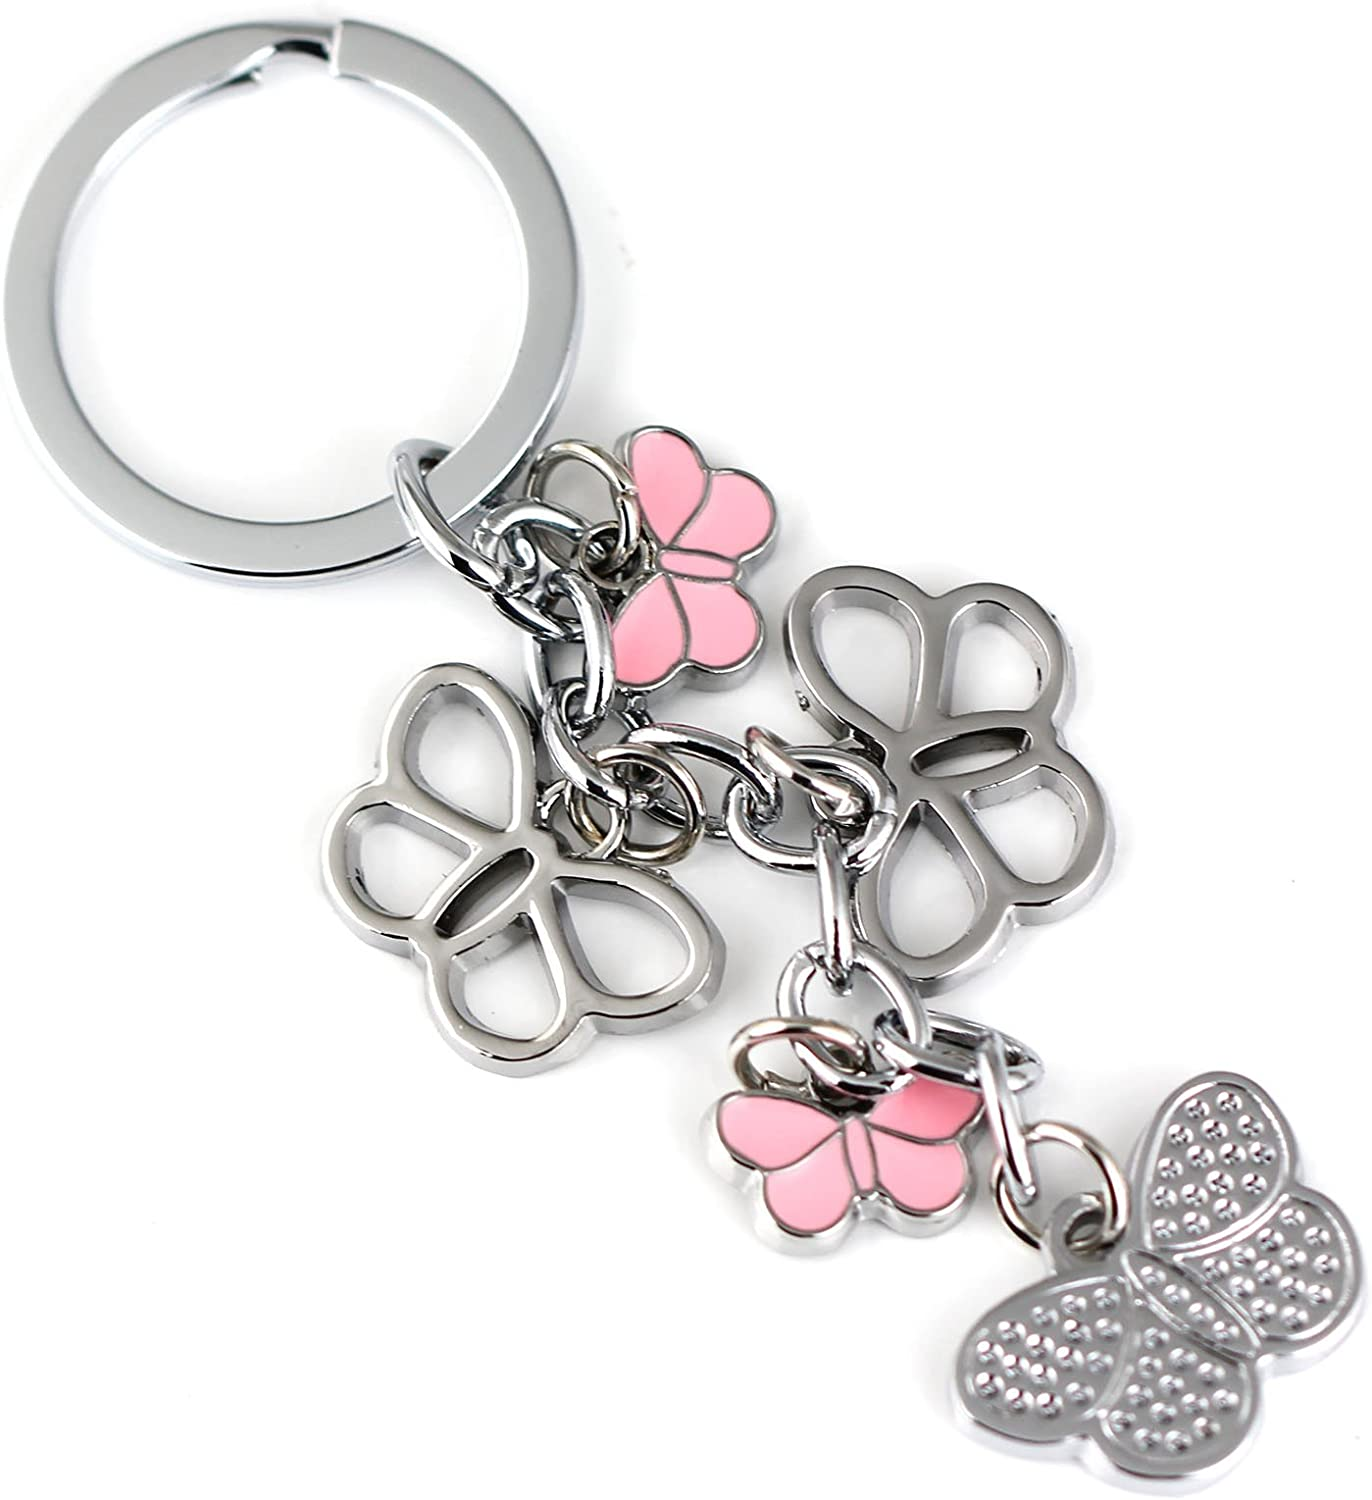 maycom Butterfly Keychain Fashion Accessories Insect Key Chain Ring Keyring Keyfob Keyholder (Pink)